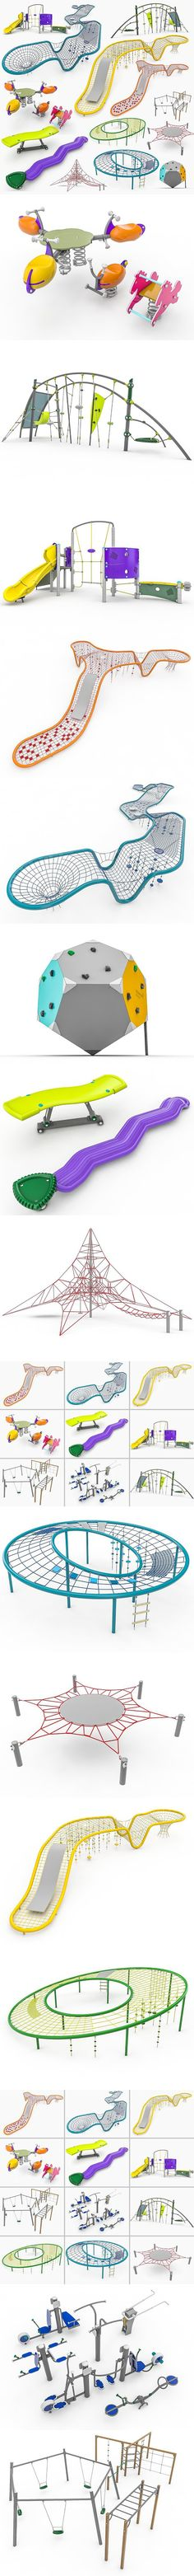 Kompan Playground Equipment Set. 3D Architecture